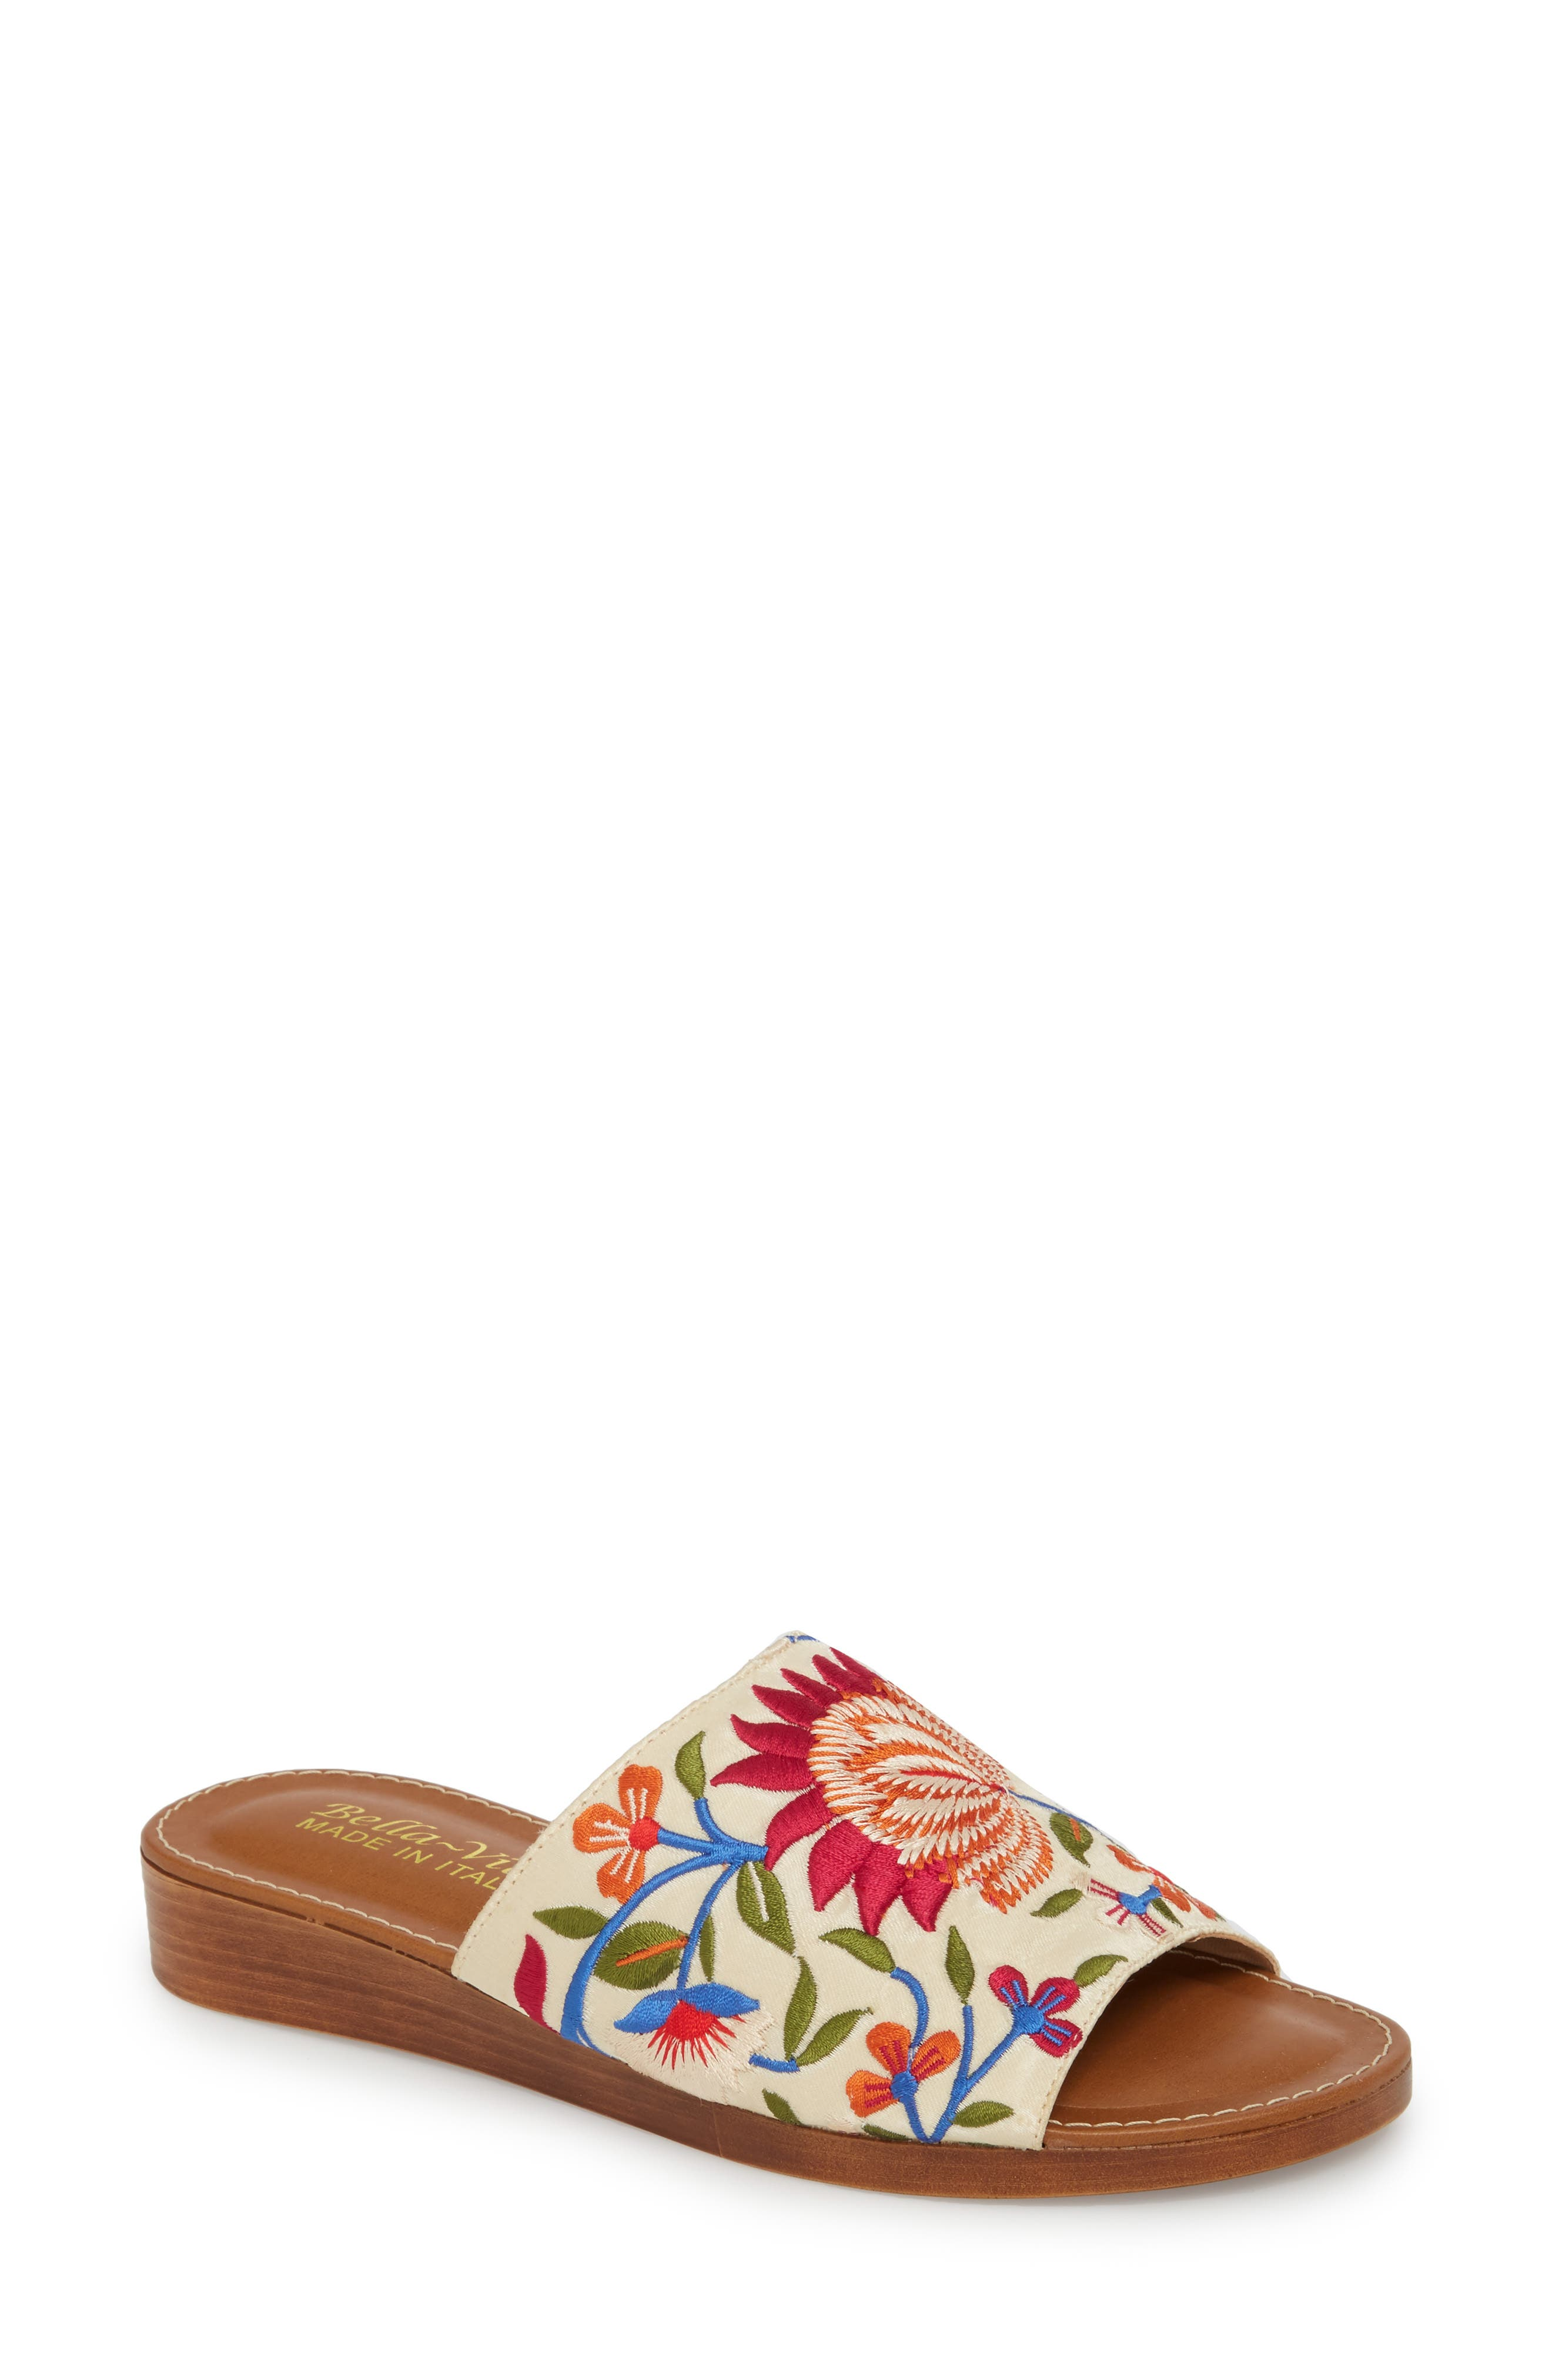 Abi Slide Sandal,                             Main thumbnail 1, color,                             Beige Embroidered Fabric